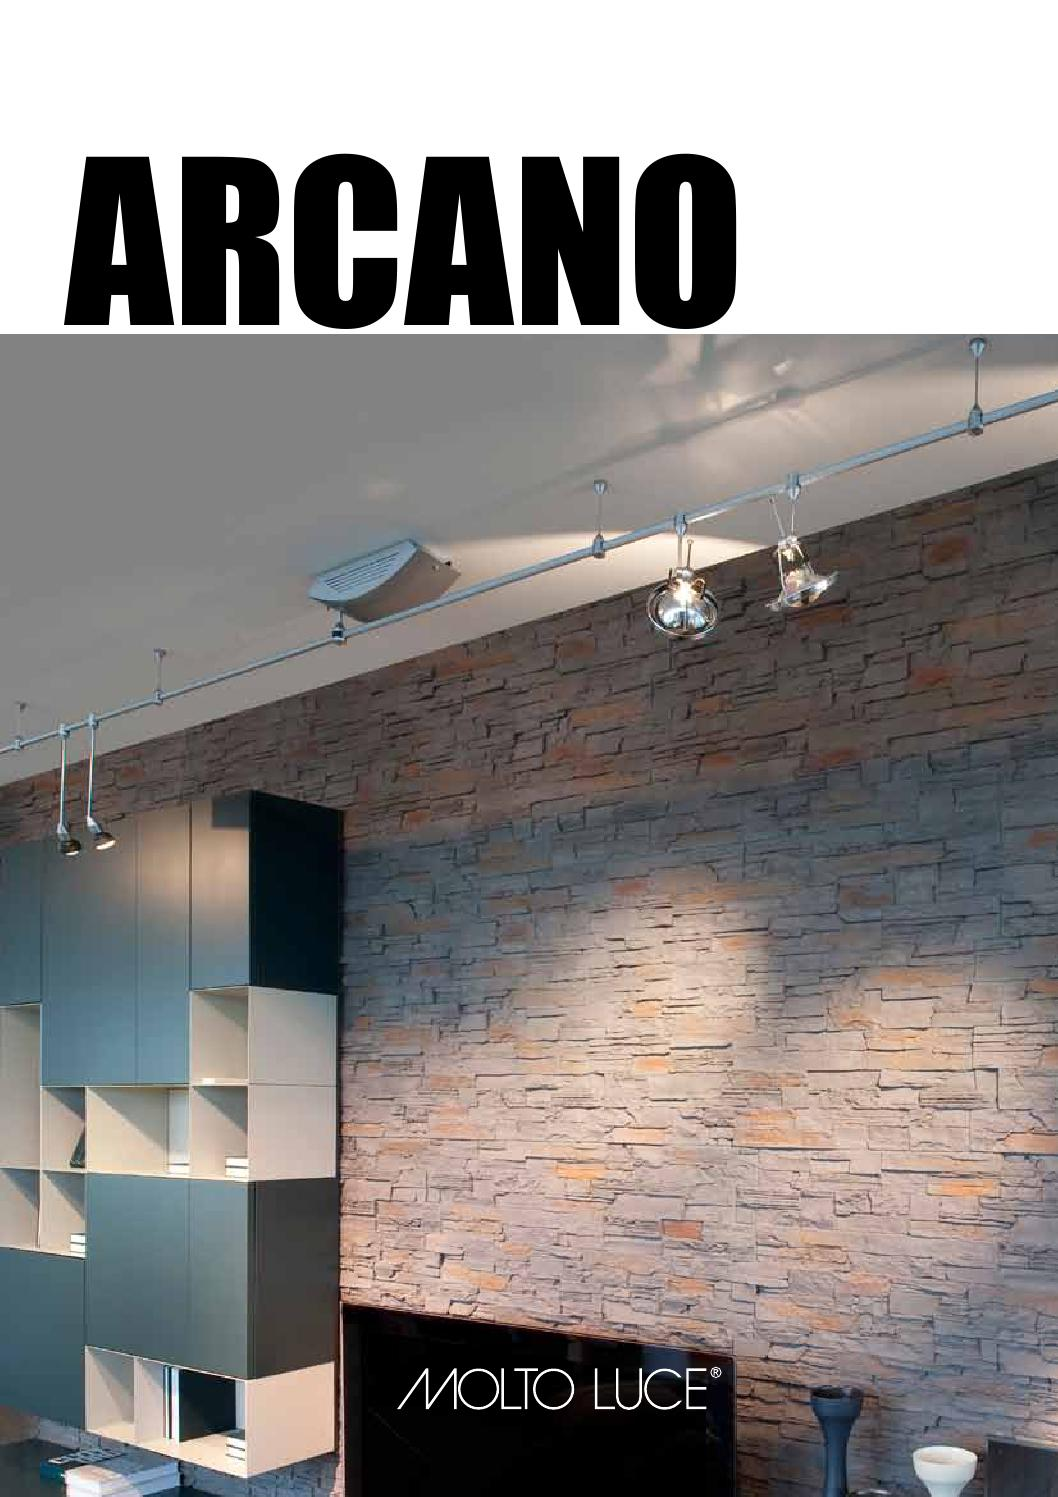 Pearl Led Strahler Molto Luce - Arcano By Rafael - Issuu